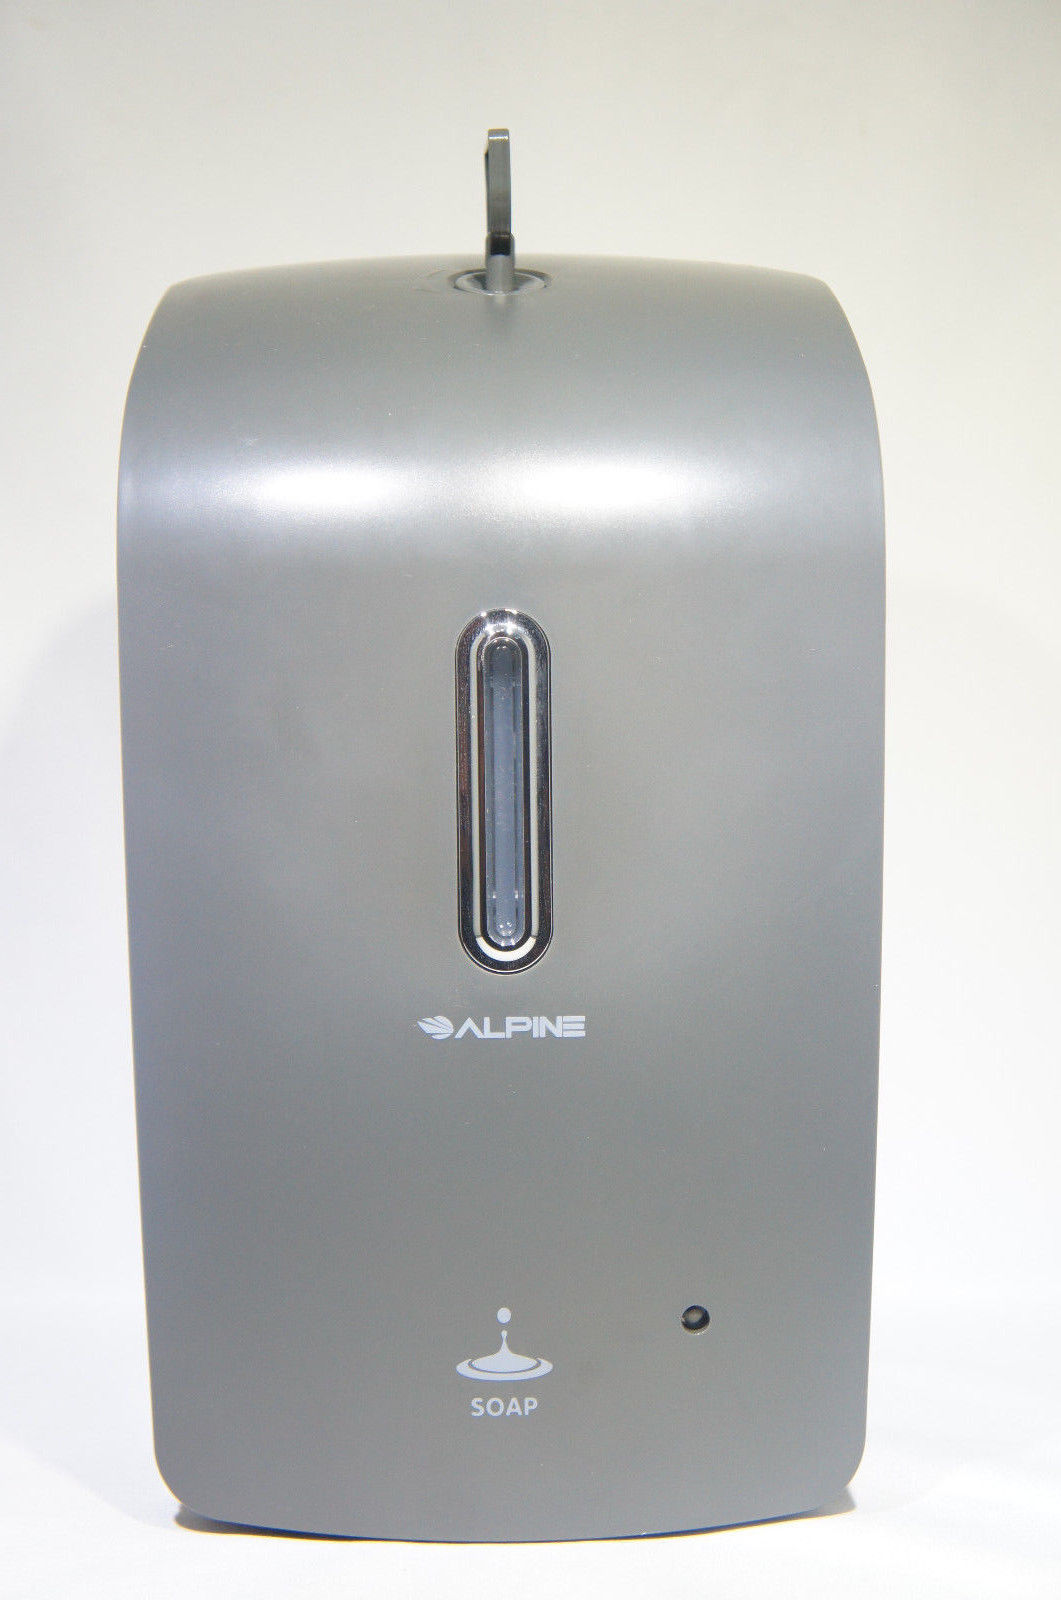 Alpine Wall Mountable, Touchless, Universal Foam Soap Dispenser for Offices, Schools, Warehouses, Food Service Facilities, and Manufacturing Plants, Battery Powered (Gray) (Like New)